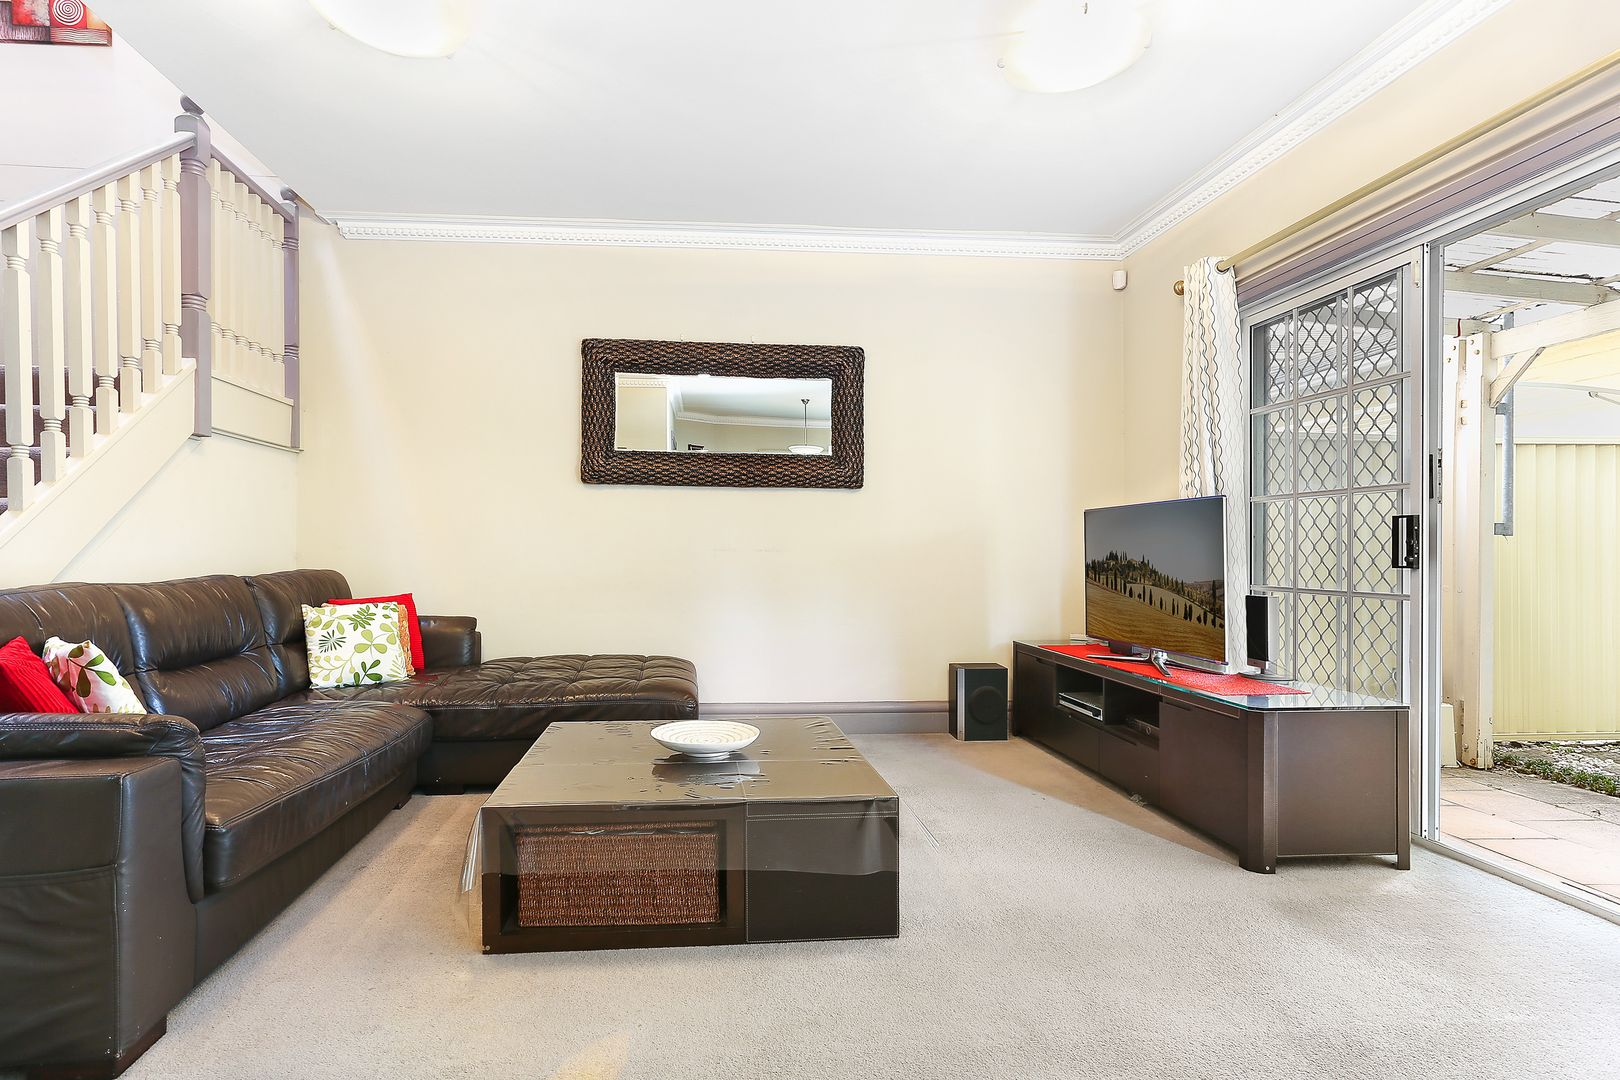 22/150 Dean Street, Strathfield South NSW 2136, Image 0